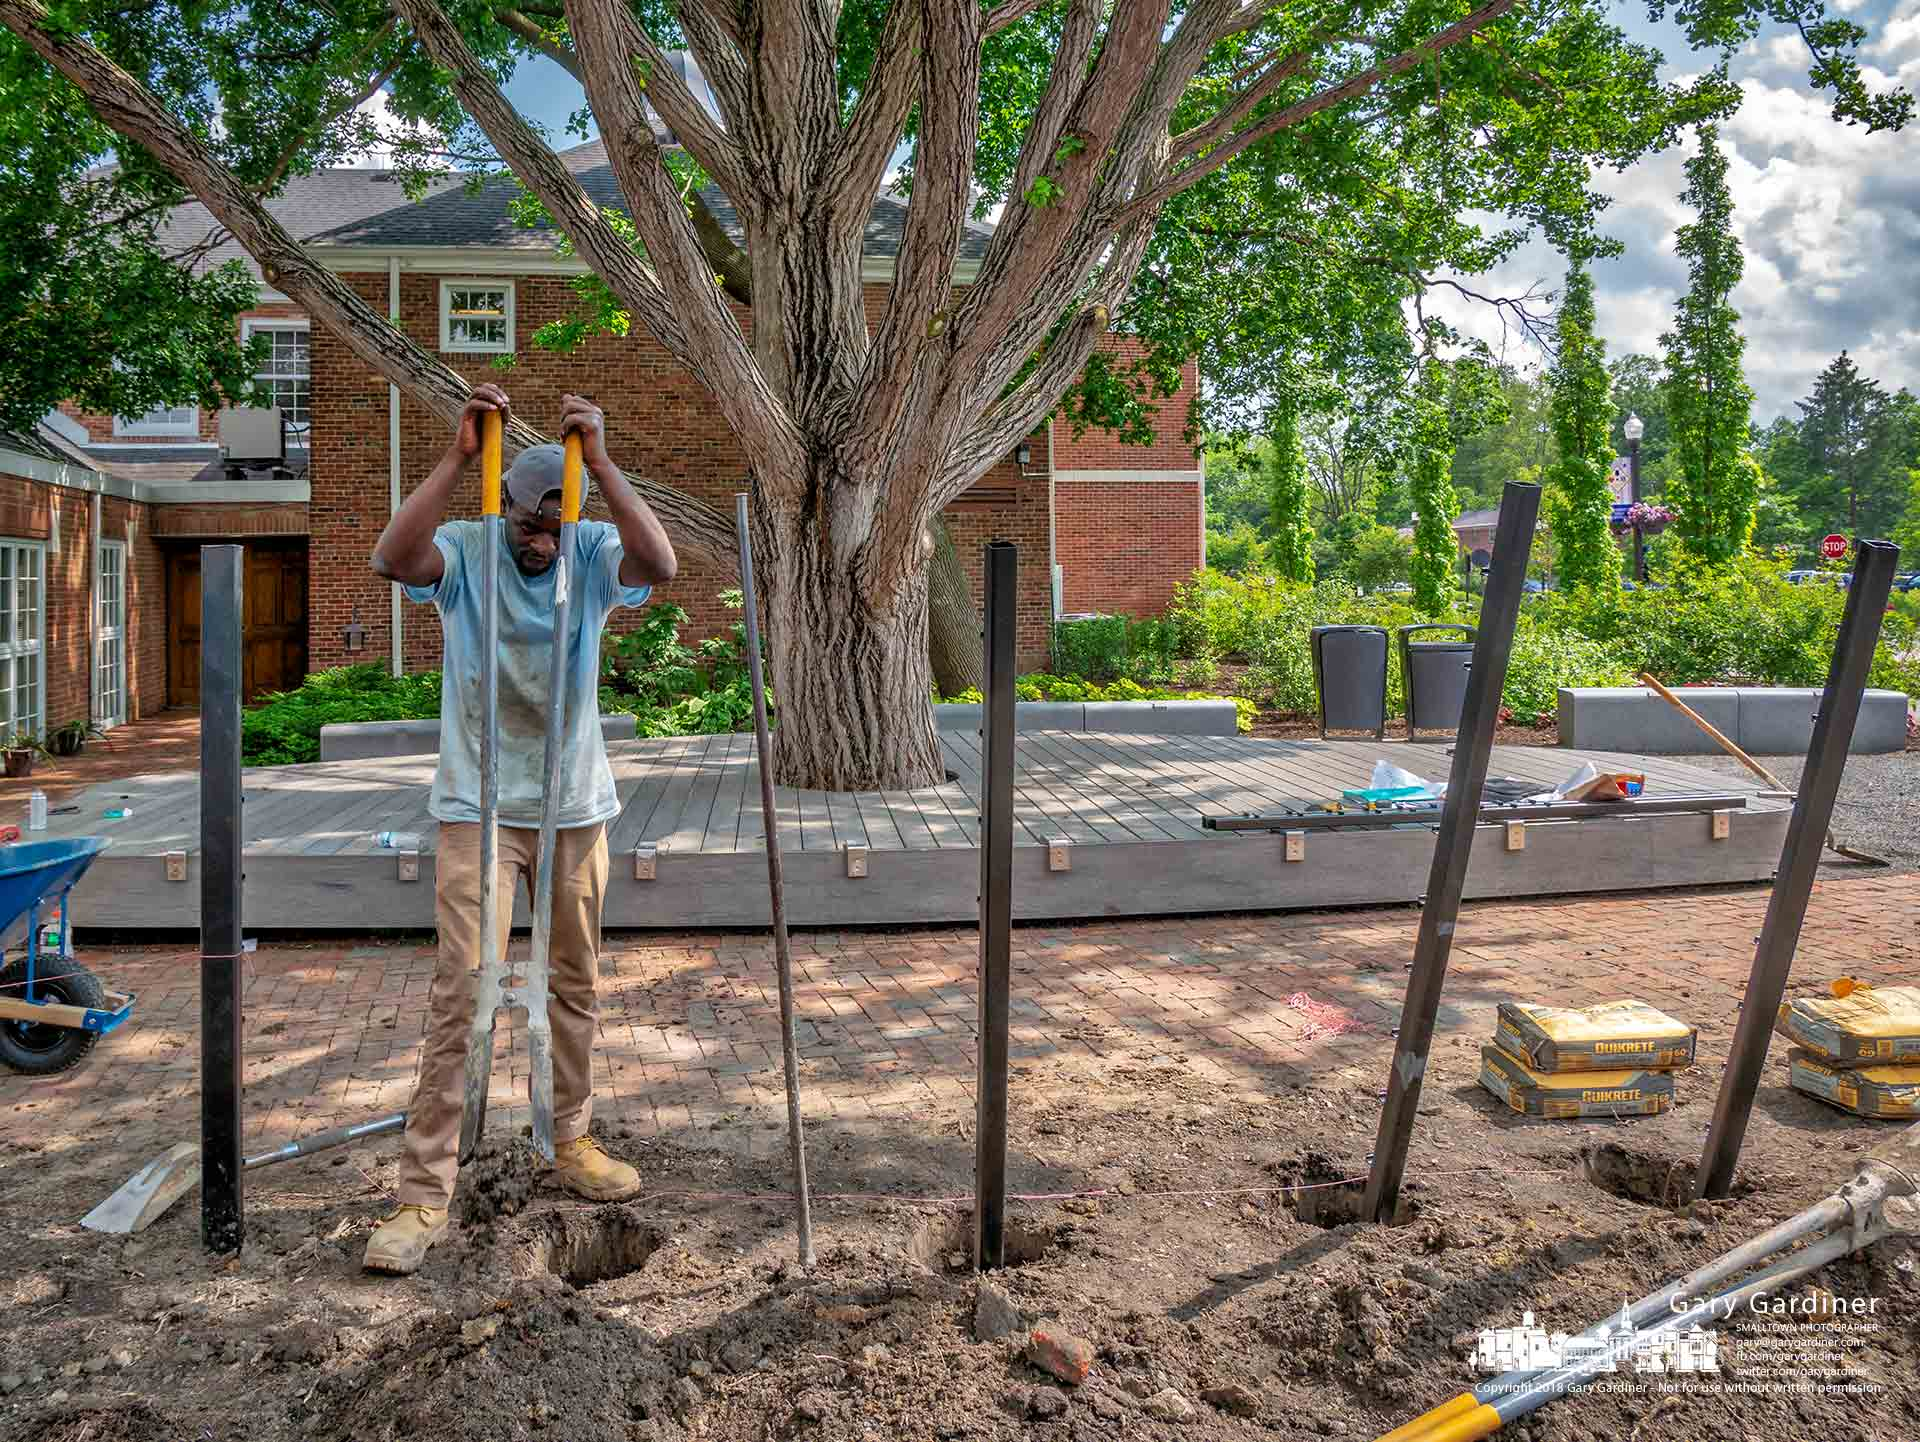 A worker uses a post hole digger to excavate for a new fence to be built along the northern edge of city hall and the newly renovated walkway and seating area. My Final Photo for May 22, 2018.